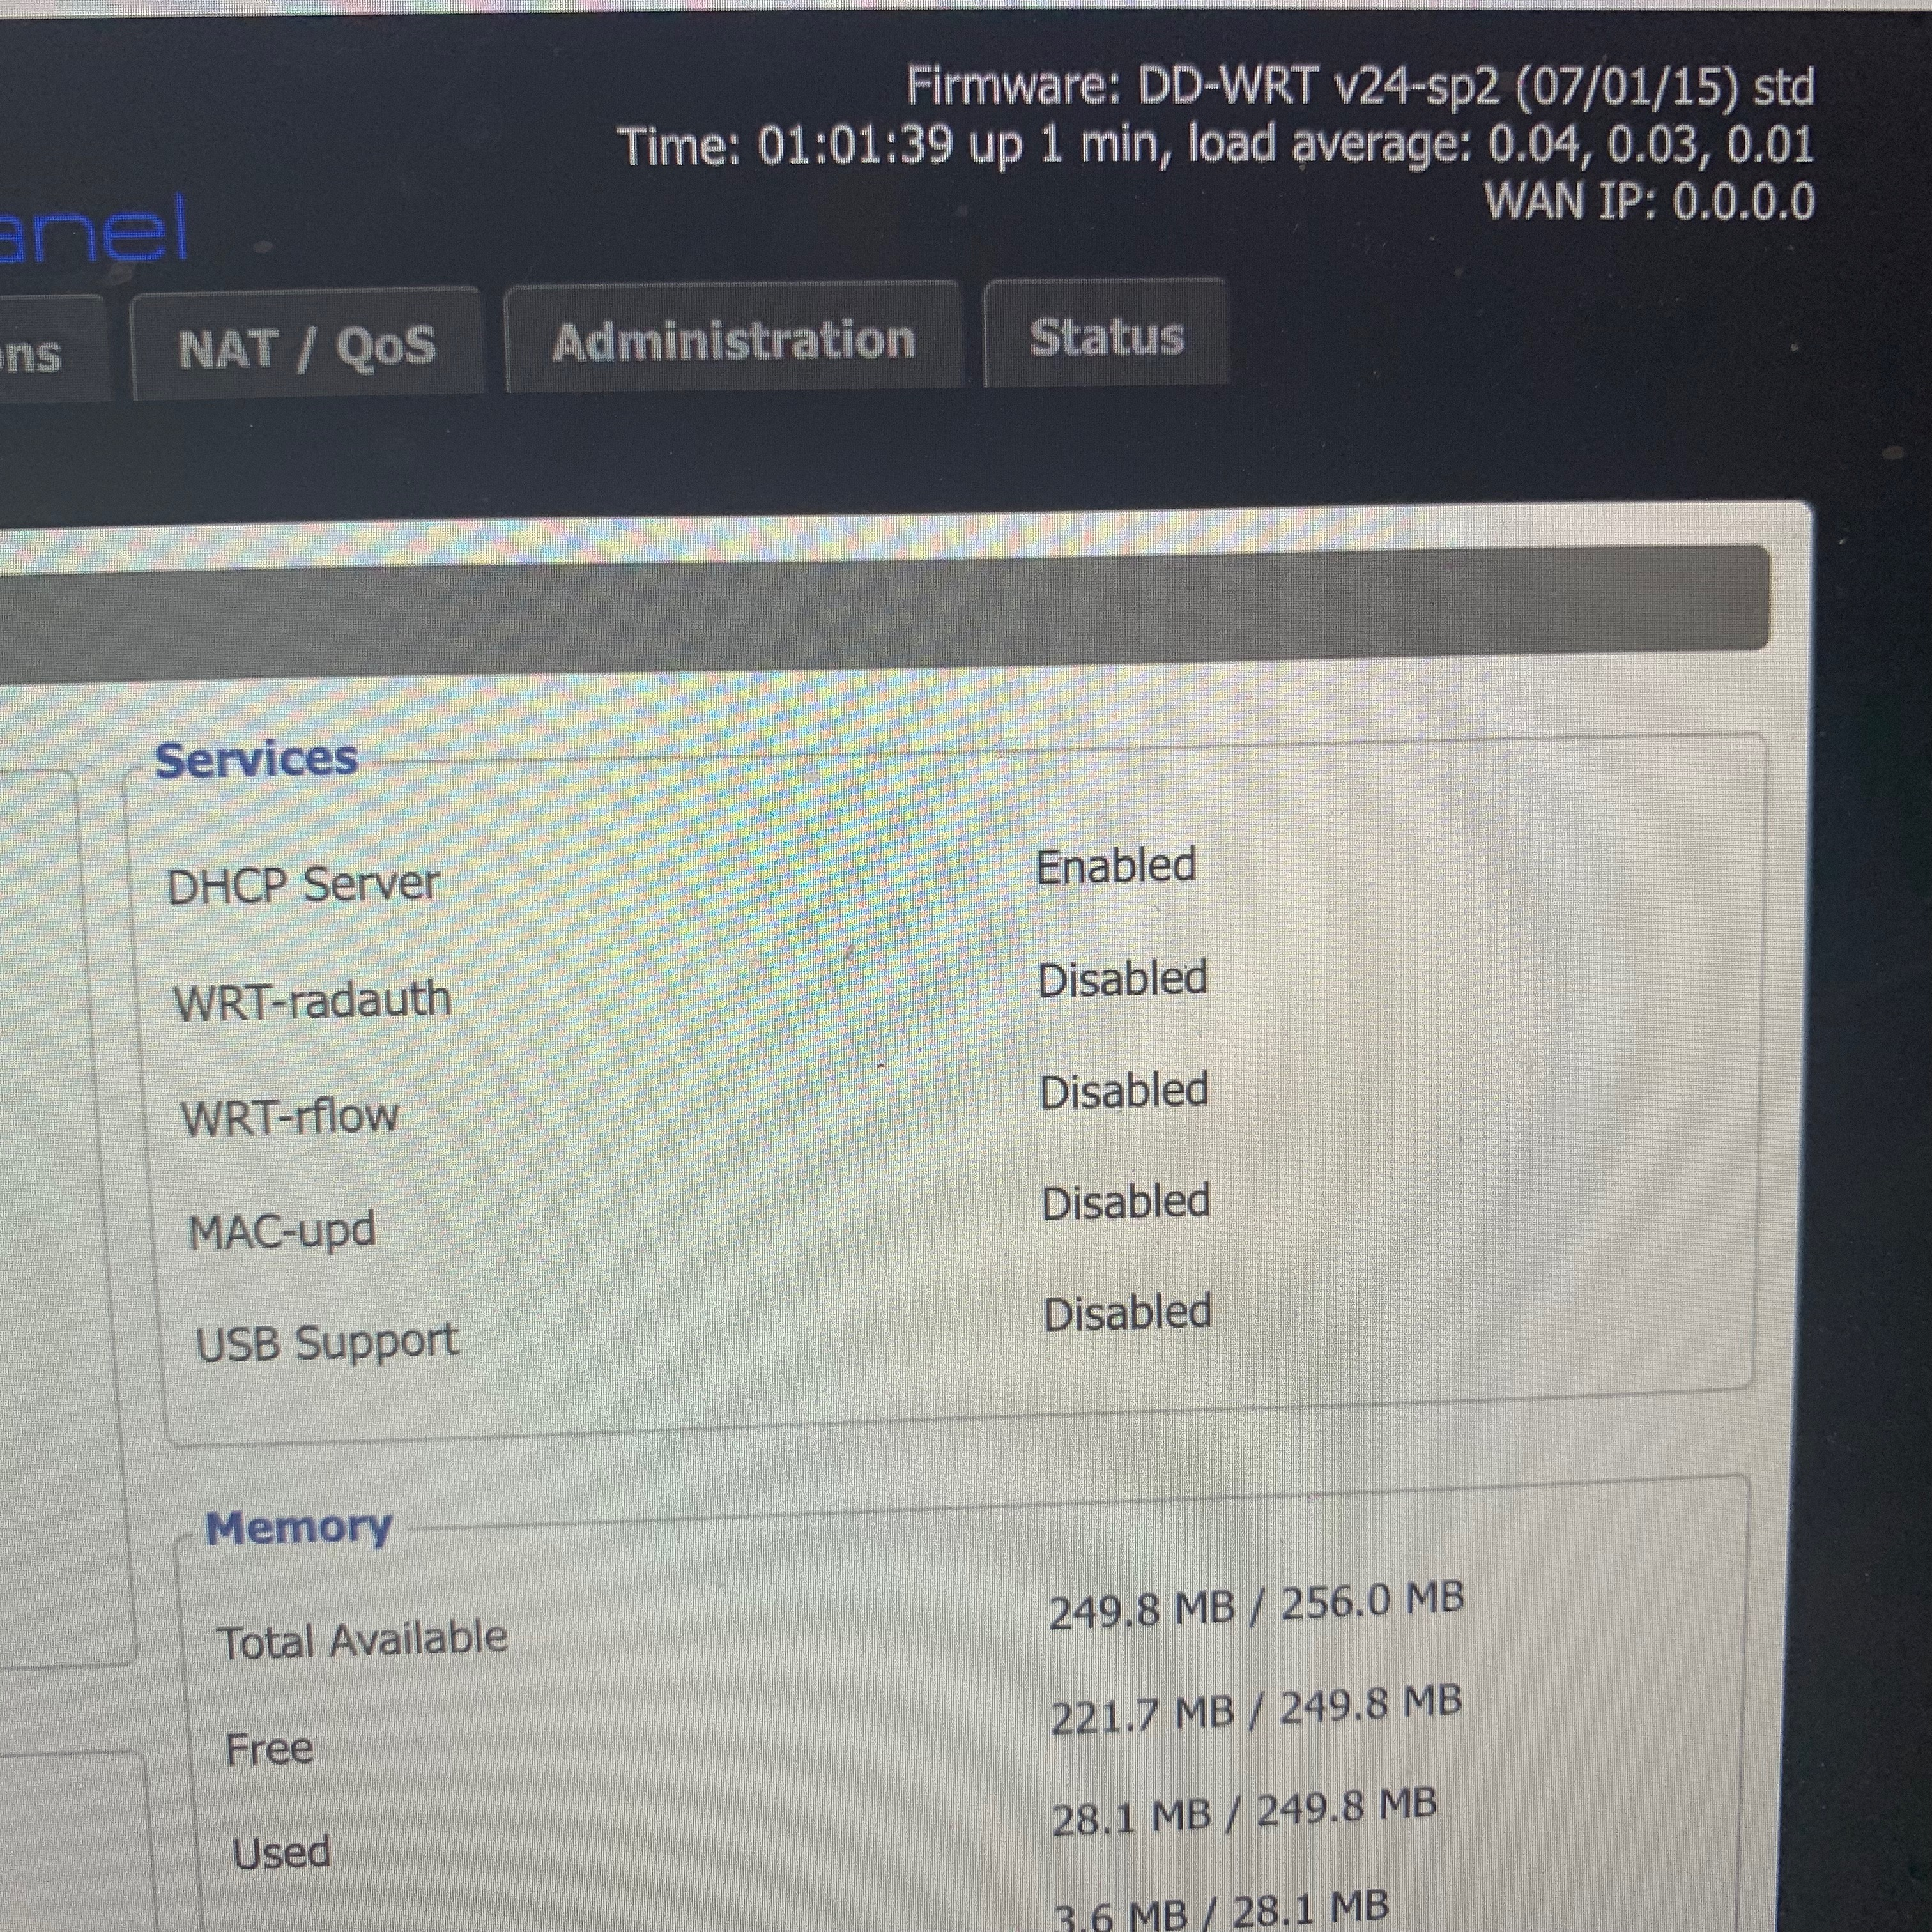 Solved: Netgear R7000 AC1900 with DD-WRT build 27261 not a